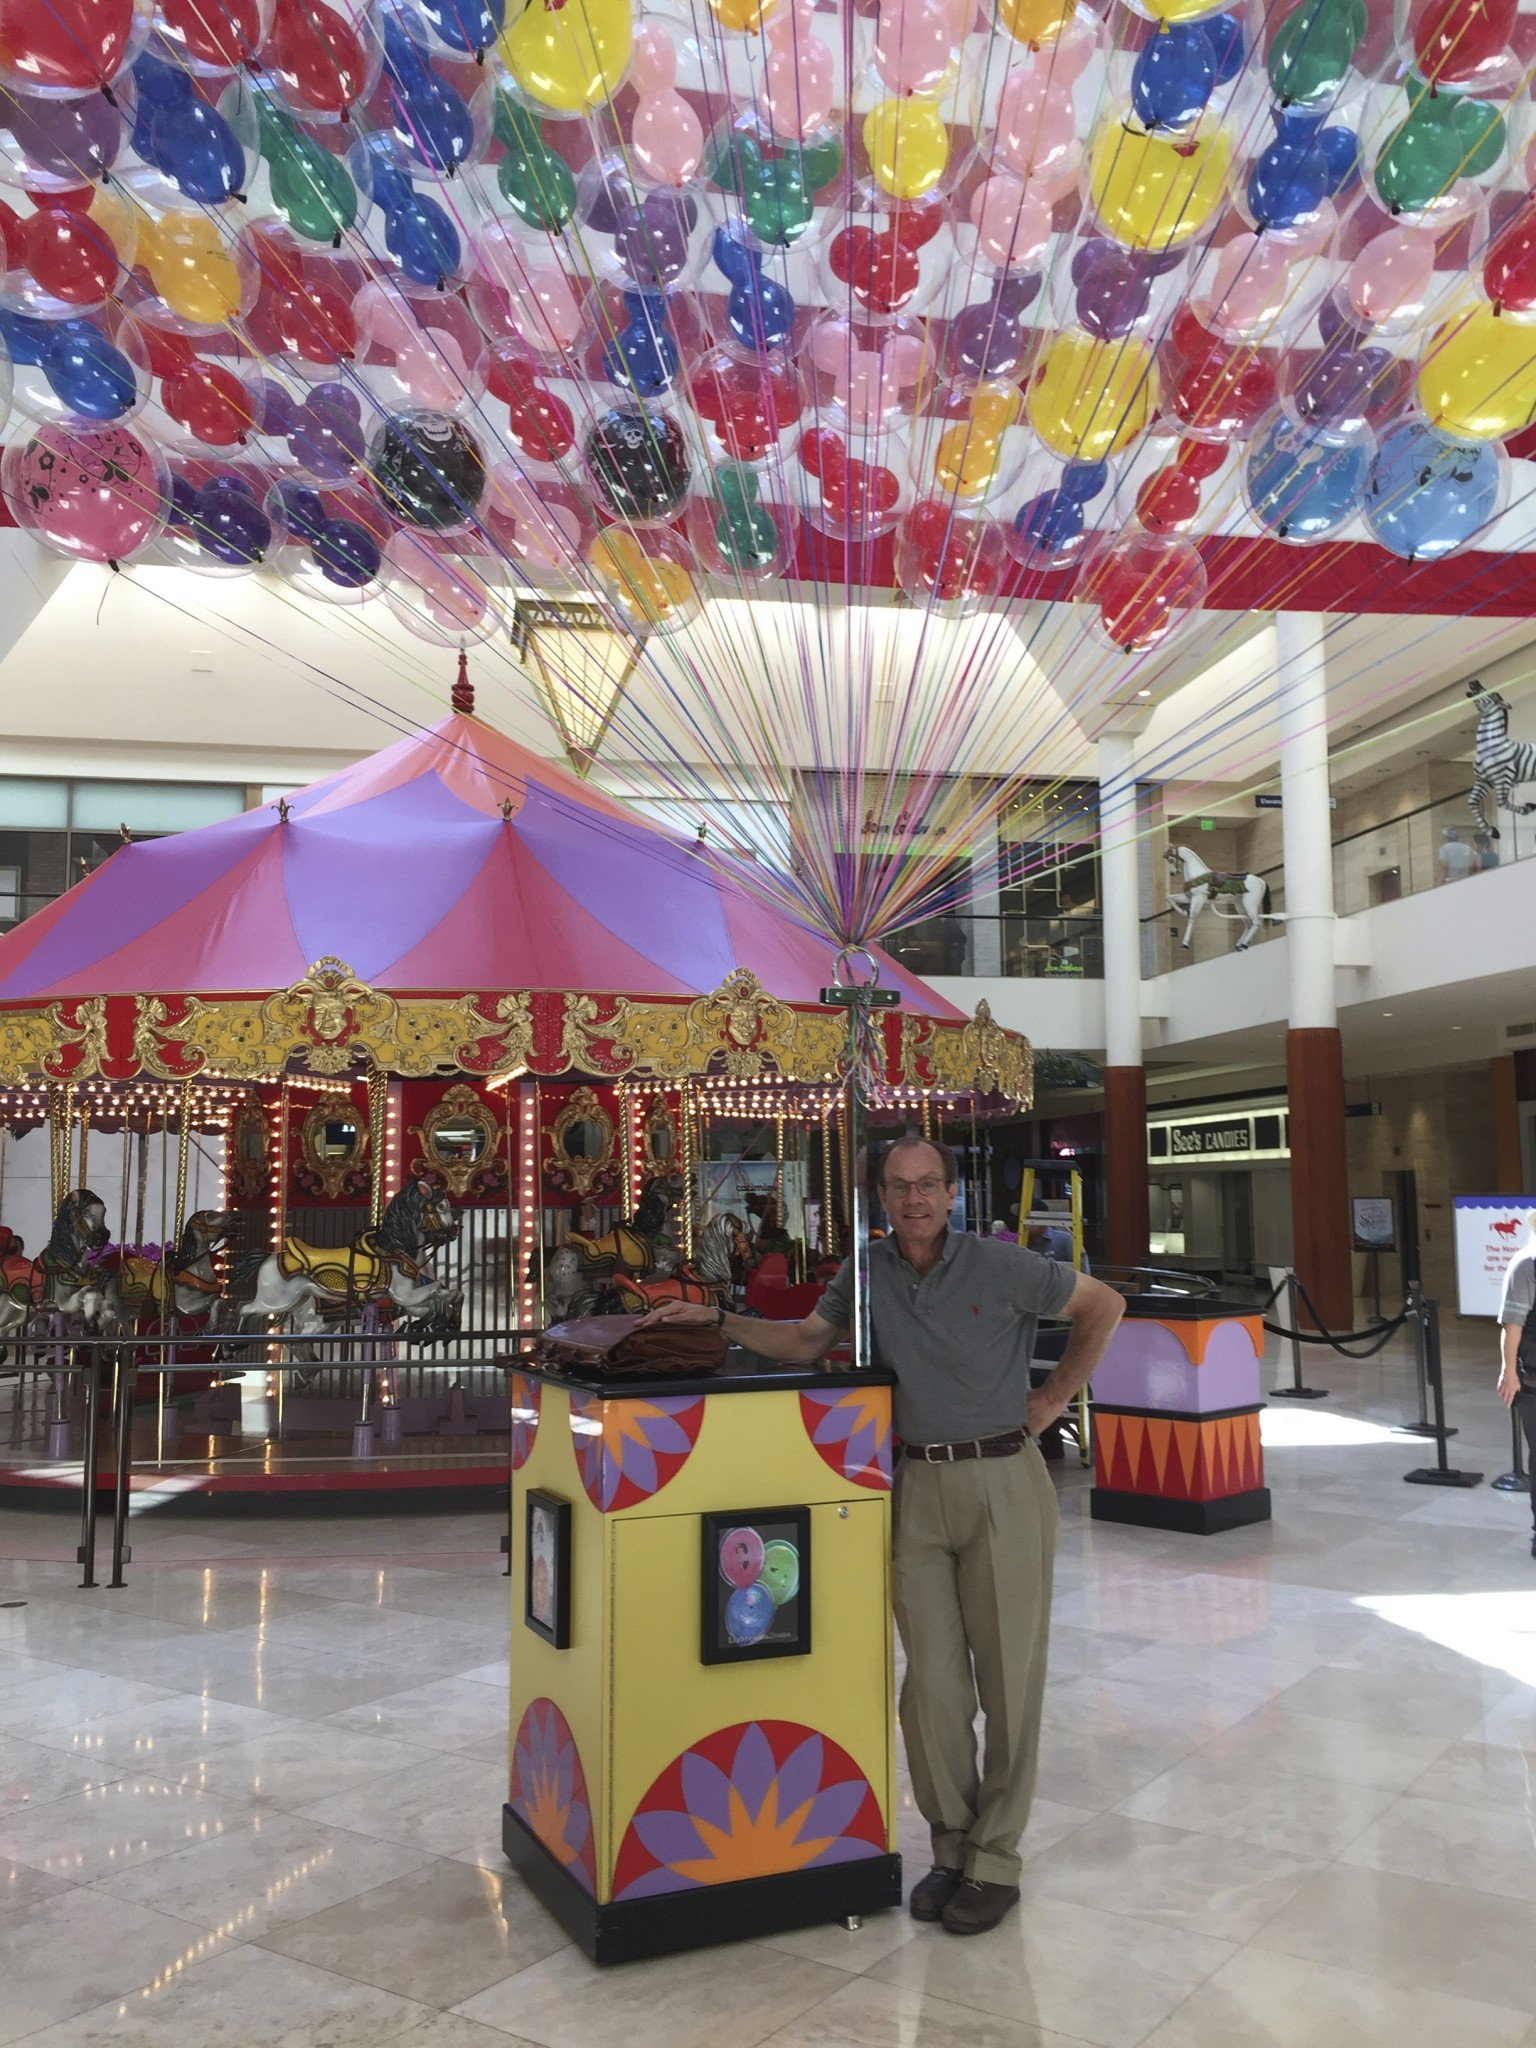 Treb Heining's balloon stand at South Coast Plaza